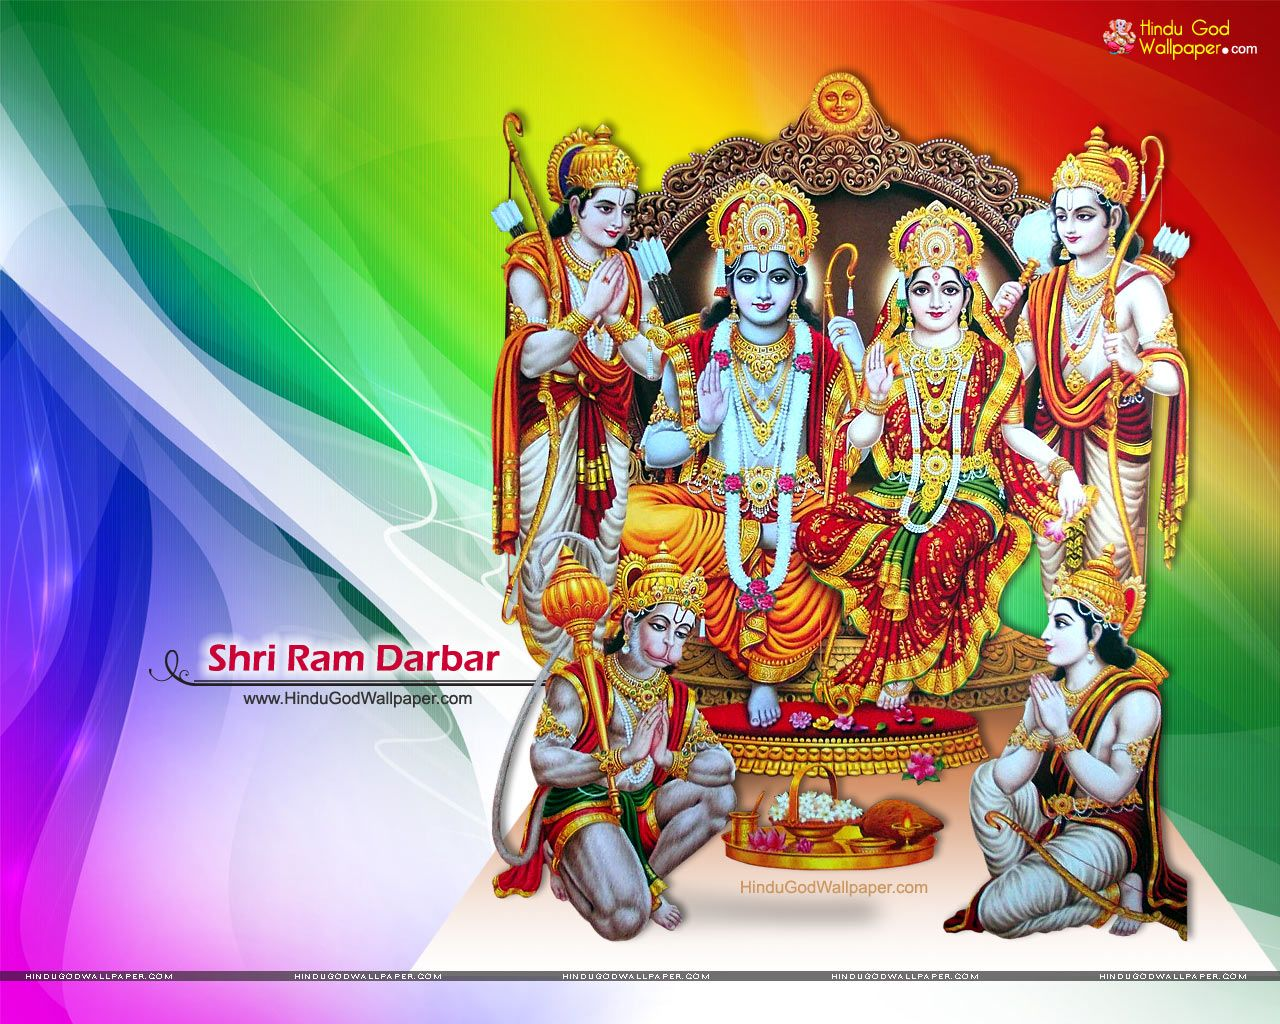 ram darbar wallpapers images amp pics free download lord